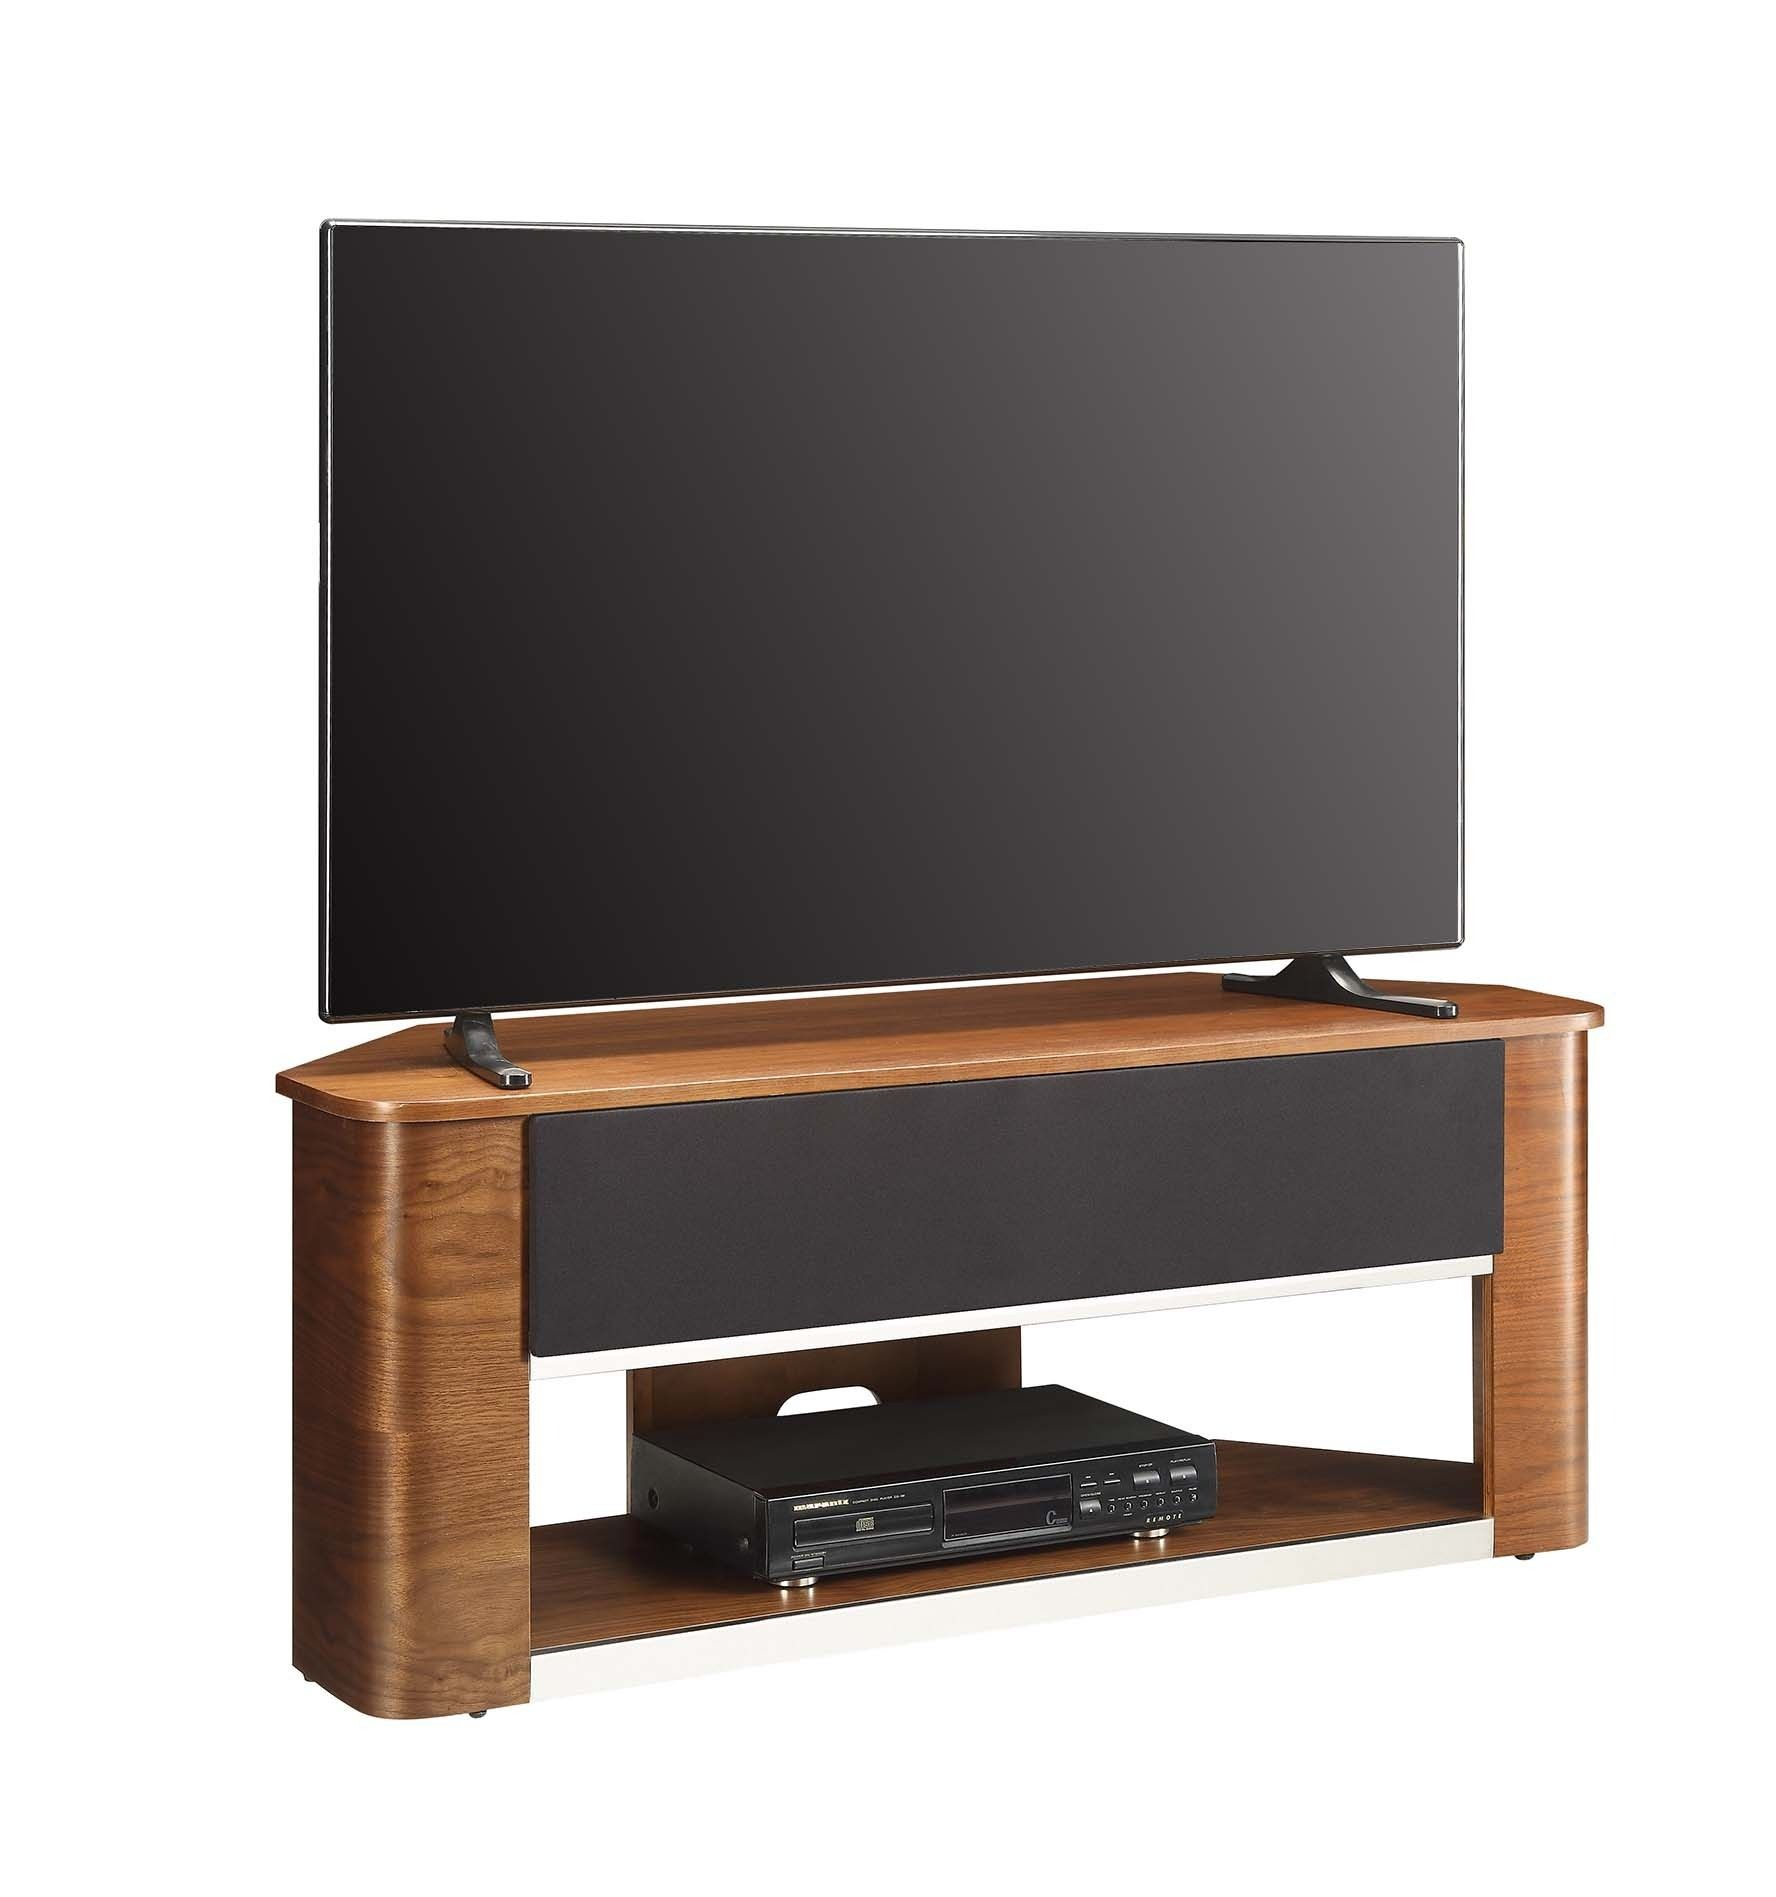 247 Best Up To 85 Tvs Tv Furniture Images On Pinterest Tv  # Meuble Support Tv Blanc